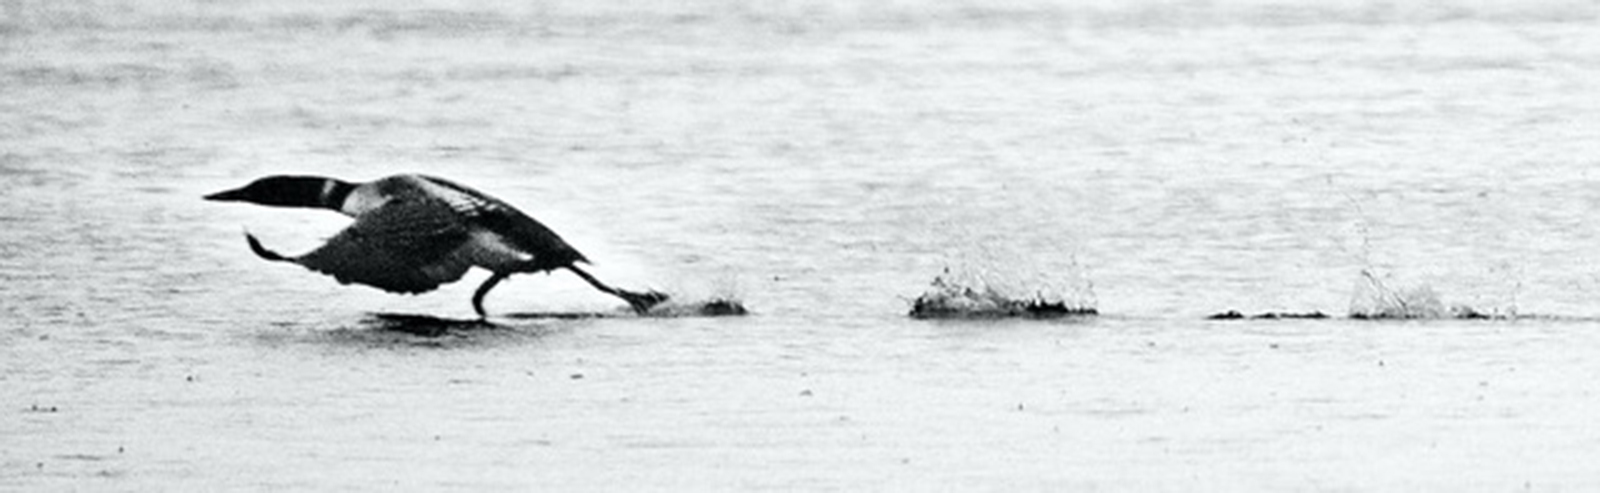 Loons splash across the water to gain the speed needed for flight.